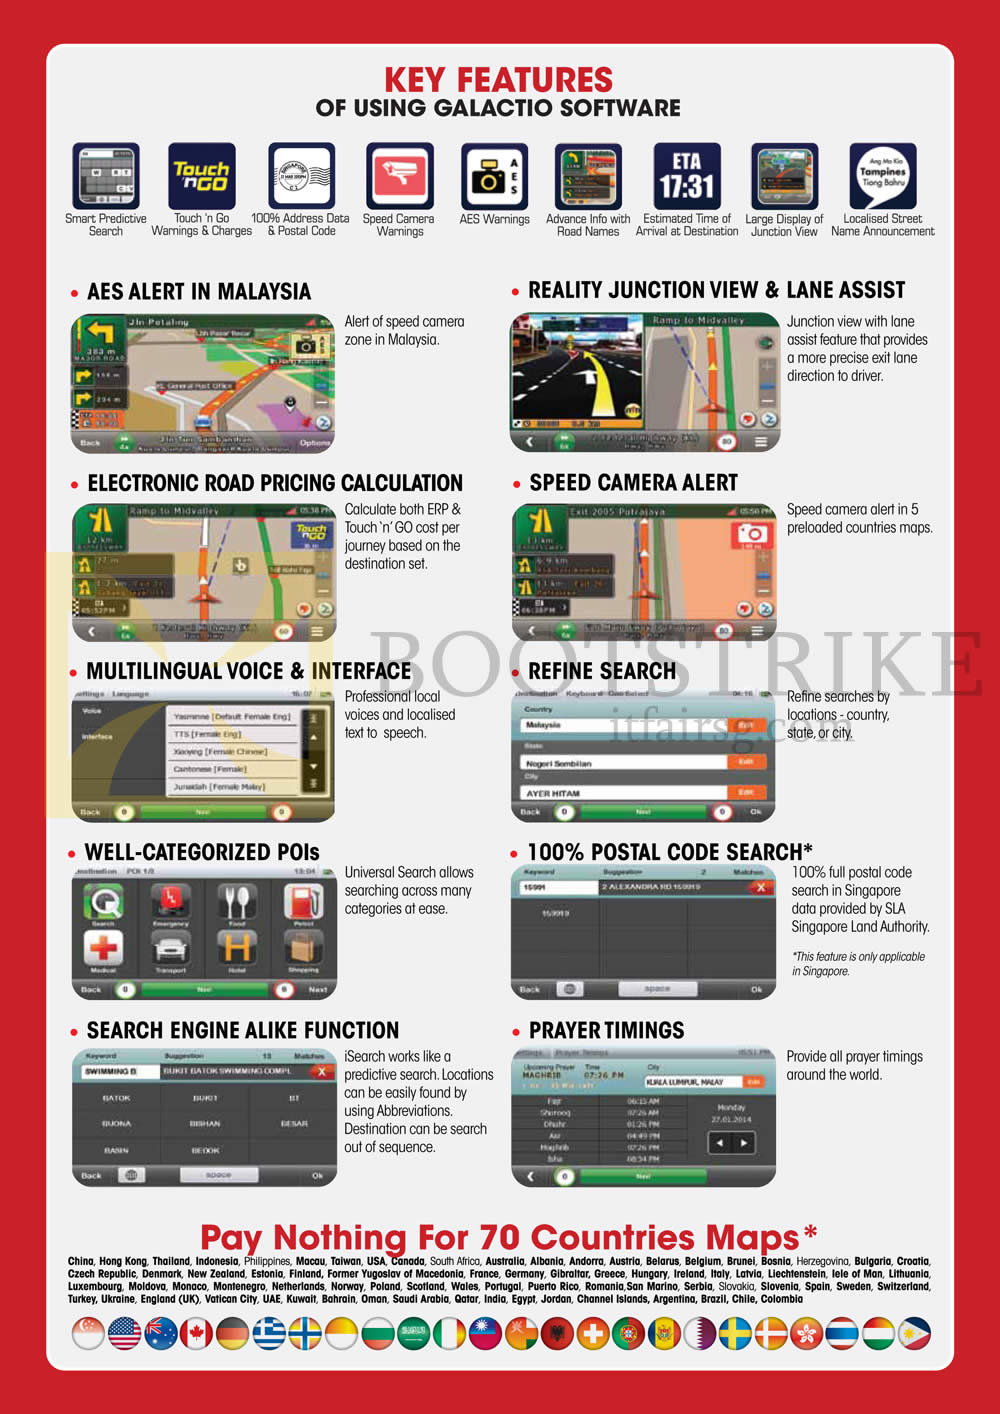 IT SHOW 2015 price list image brochure of Maka GPS Marbella Galactio Software Features